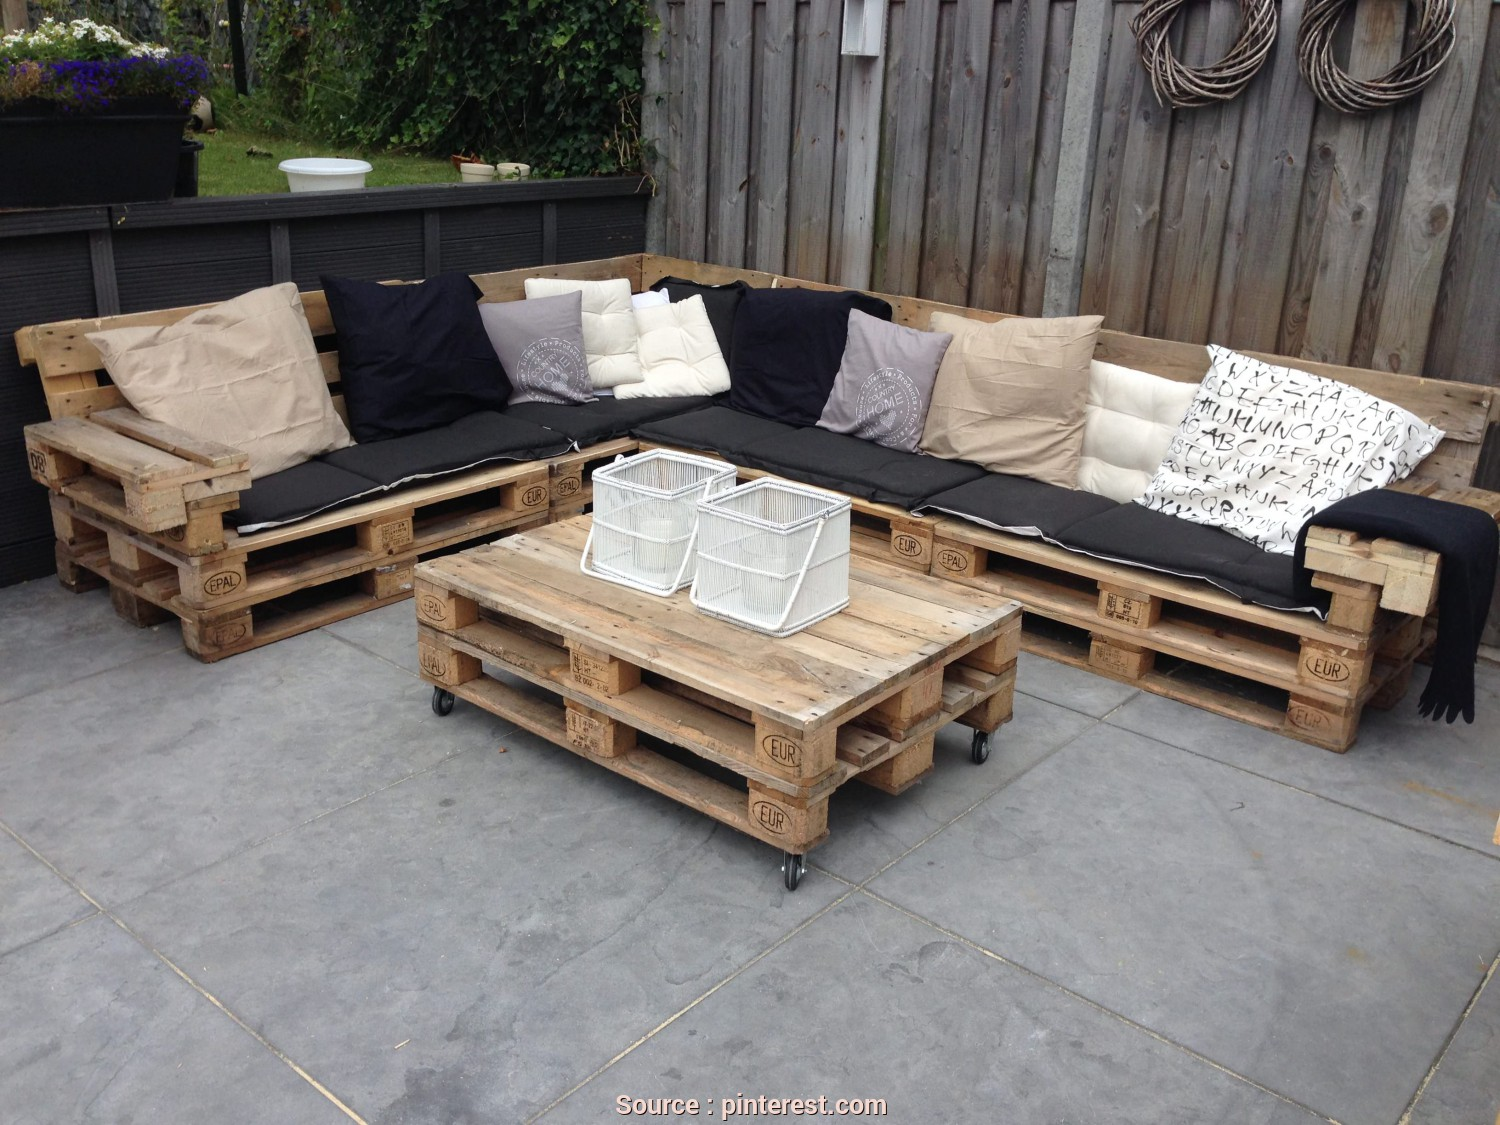 Divano, Pallet Paint Your Life, Classy Lounge, With Repurposed Euro Pallets, Eco, Pinterest, Pallet